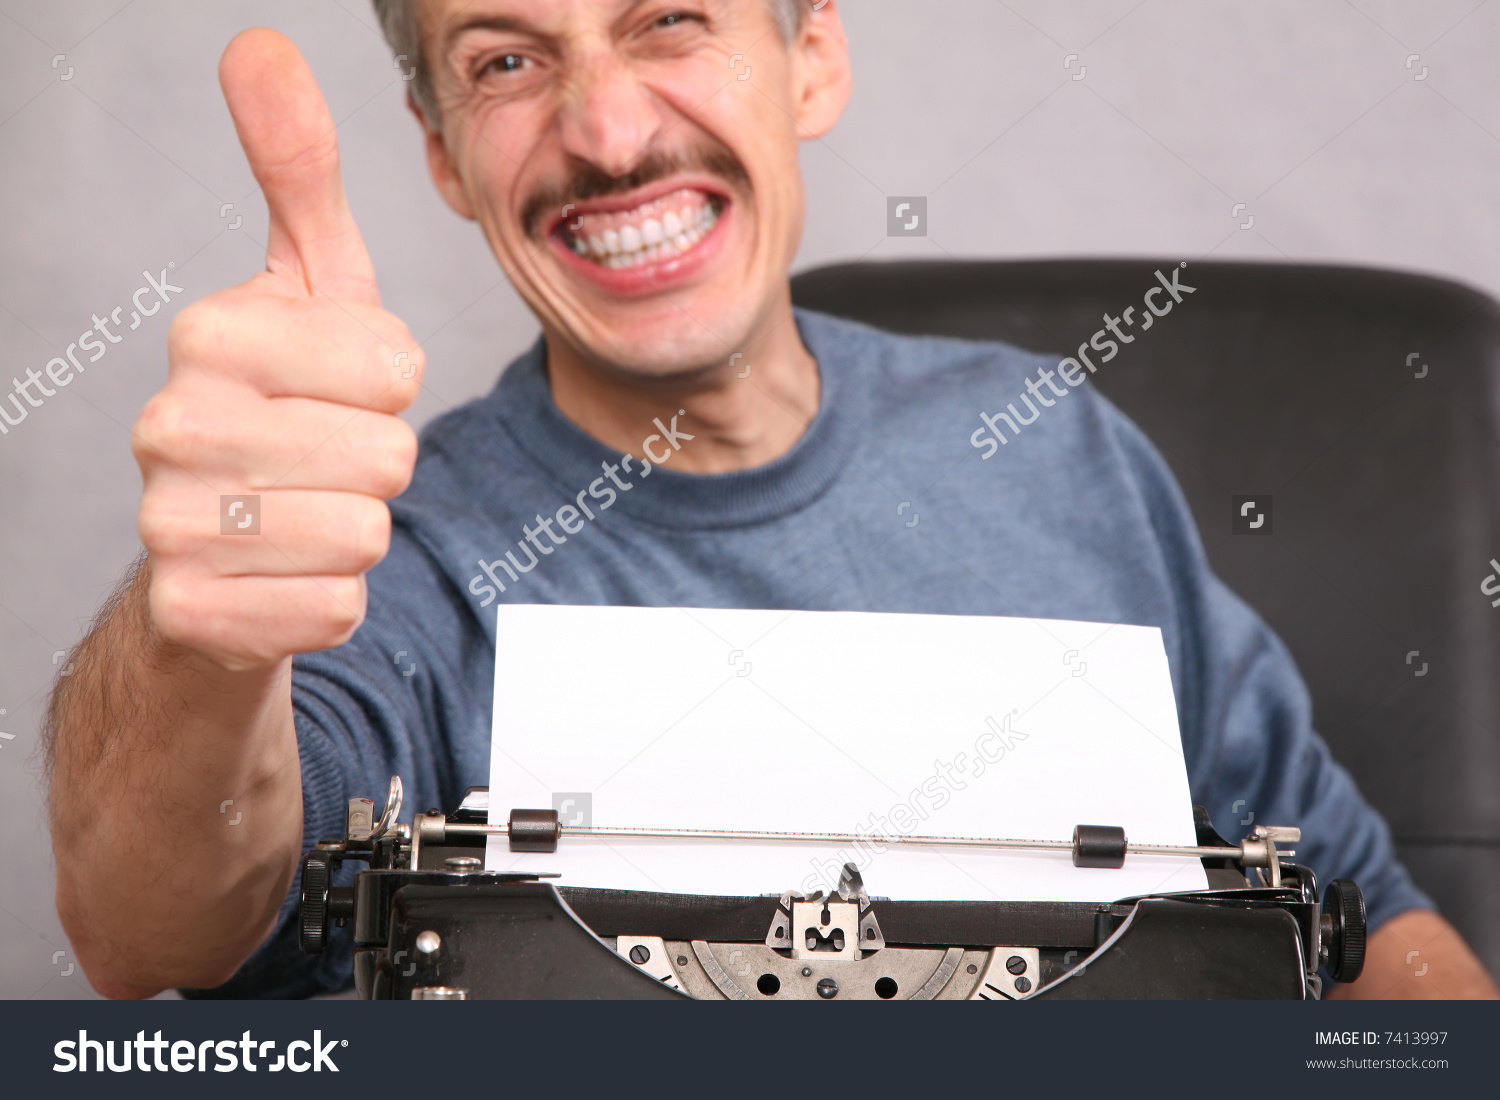 stock-photo-man-after-the-typewriter-shows-gesture-by-the-finger-7413997